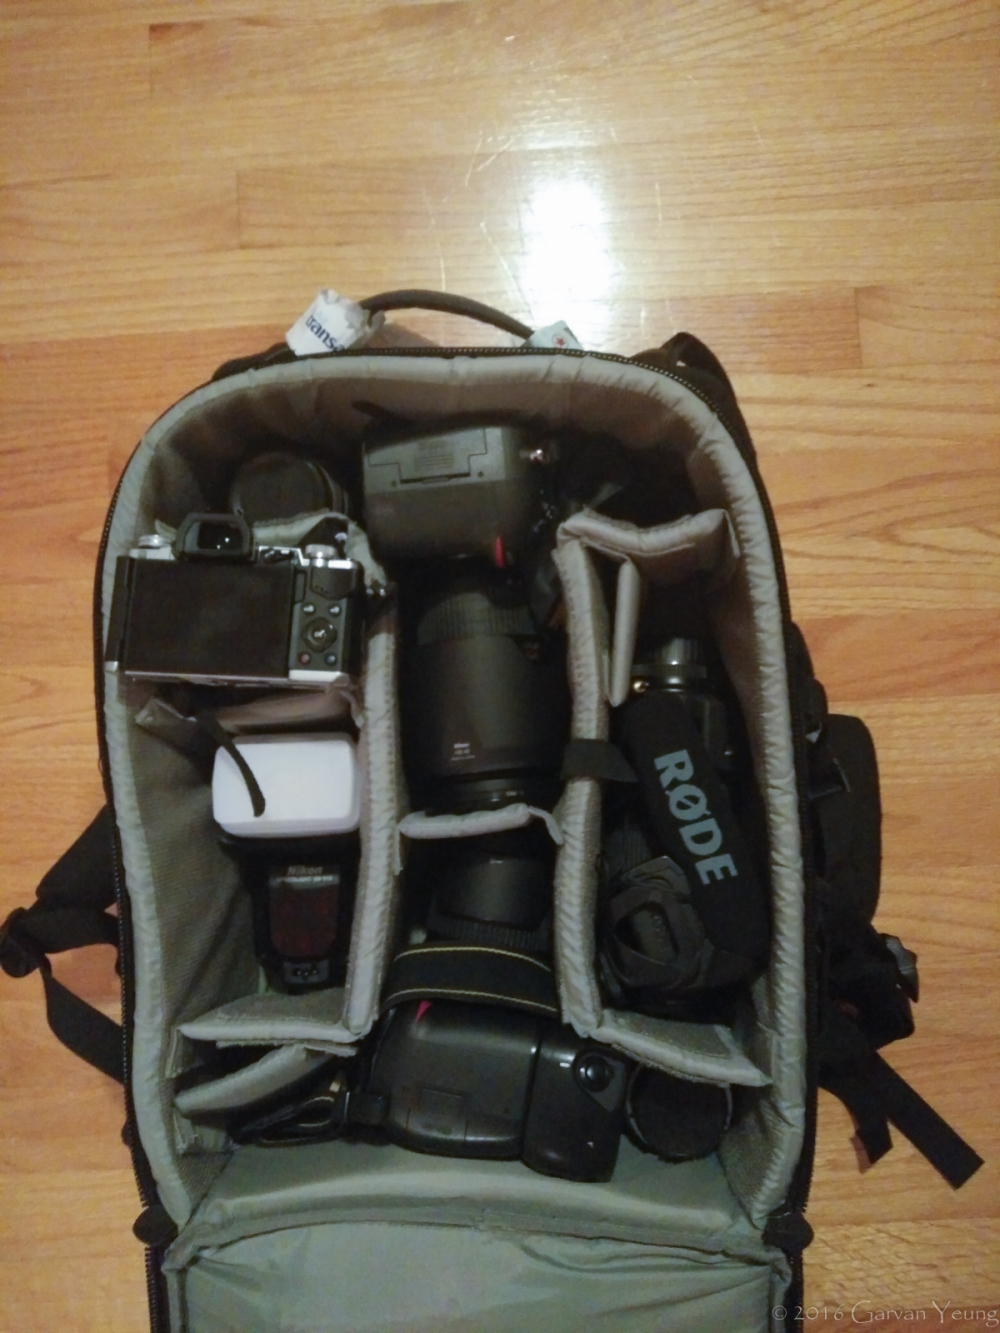 This is the inside of my bag, the Lowepro Vertex 200 AW. I have six lenses, three camera bodies and two flash units.